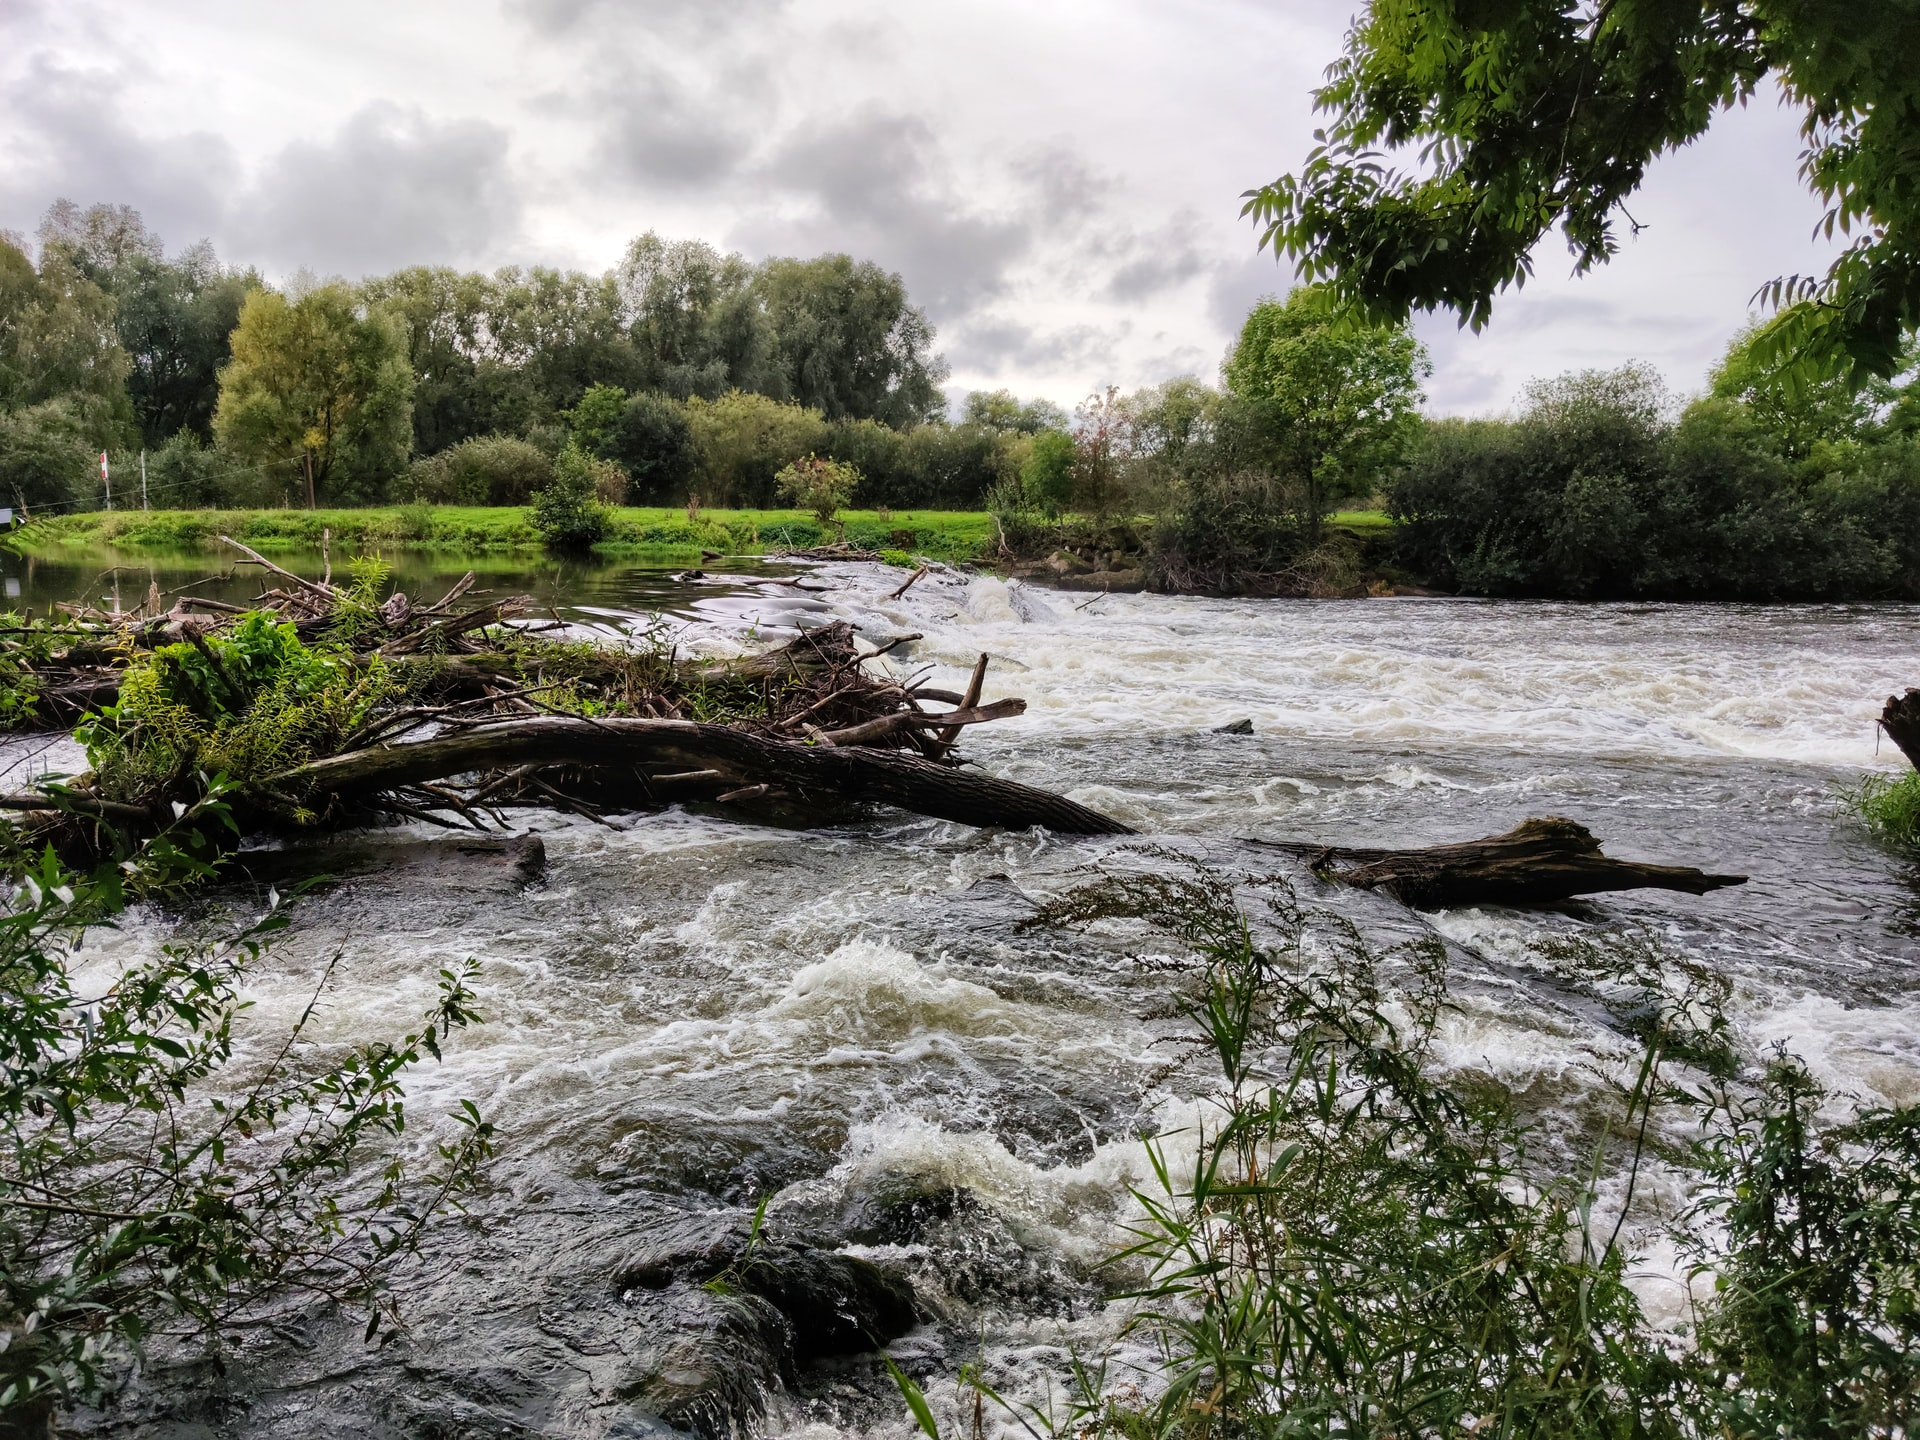 CLIMADAM PROJECT: A SEMINAR ON THE INTEGRATED PROTECTION OF THE ROŇAVA RIVER BASIN